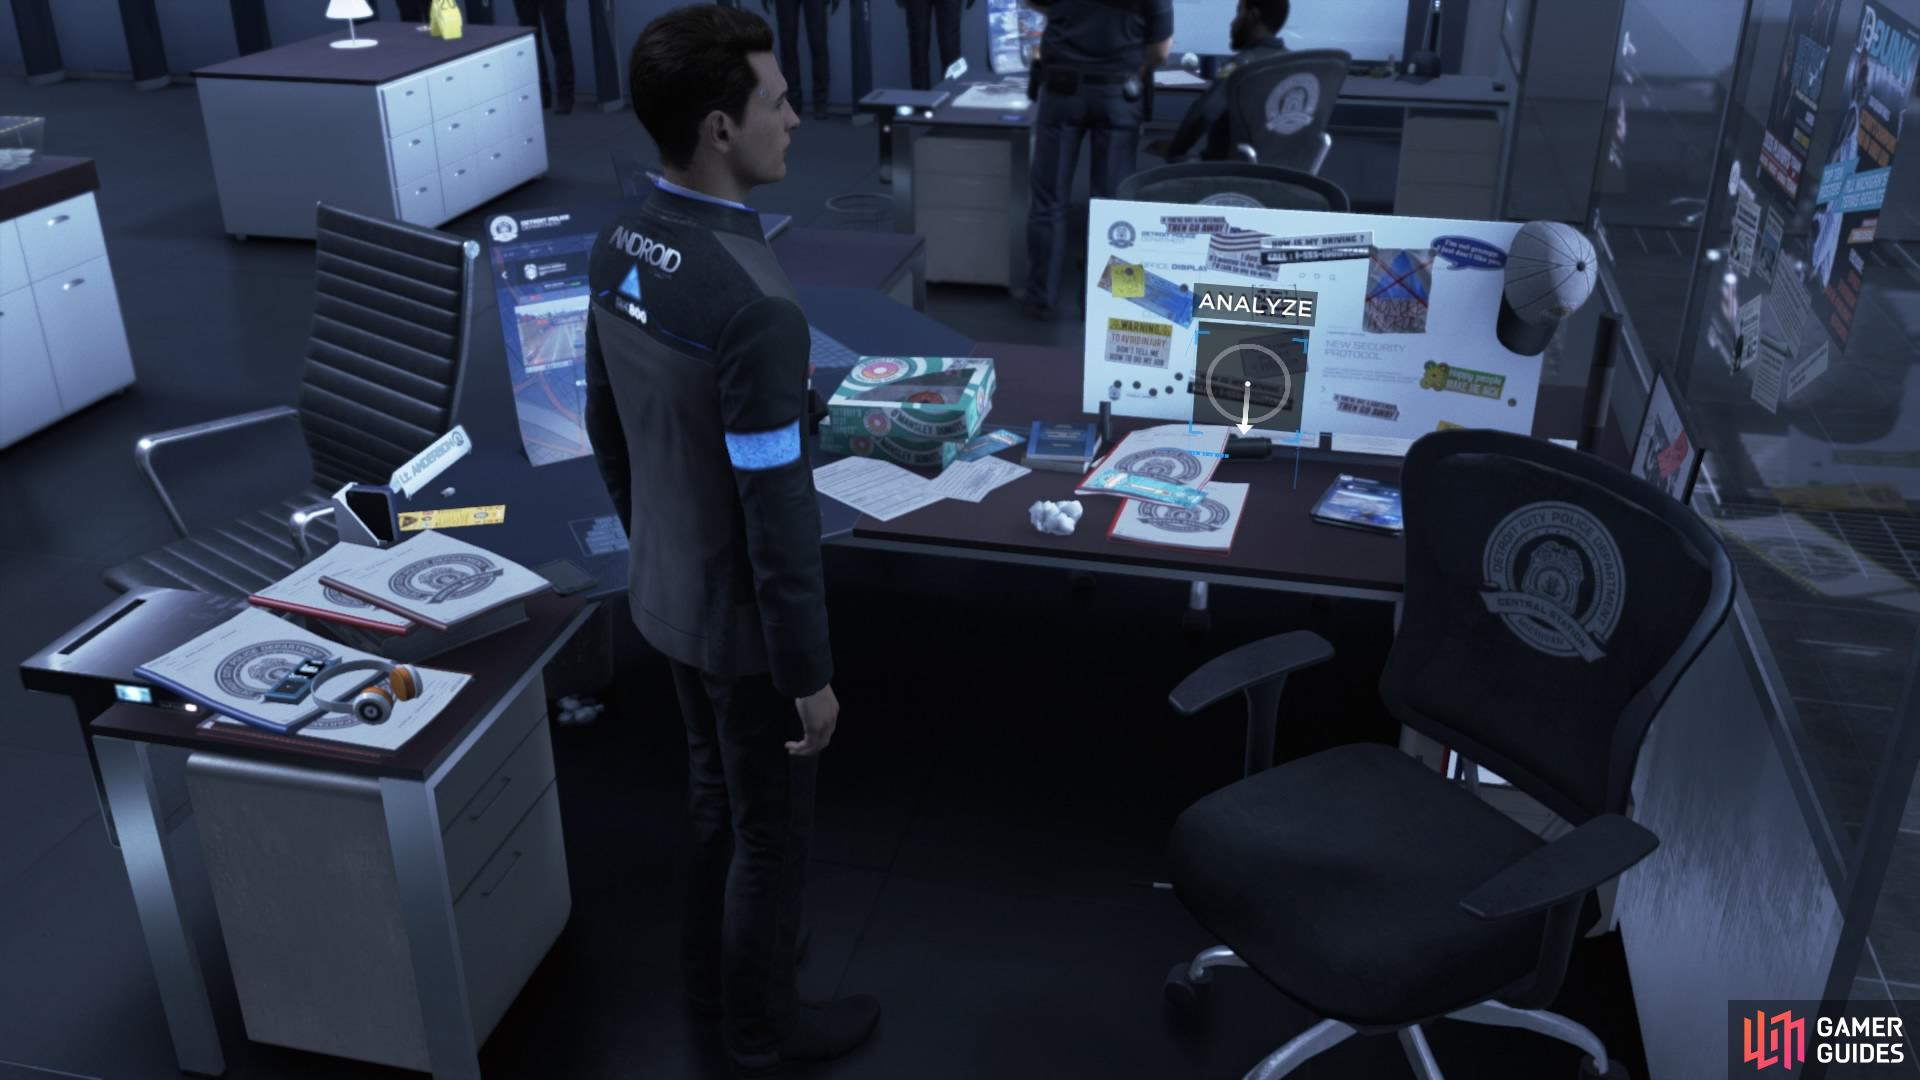 Analyse Hank's desk for 8 clues